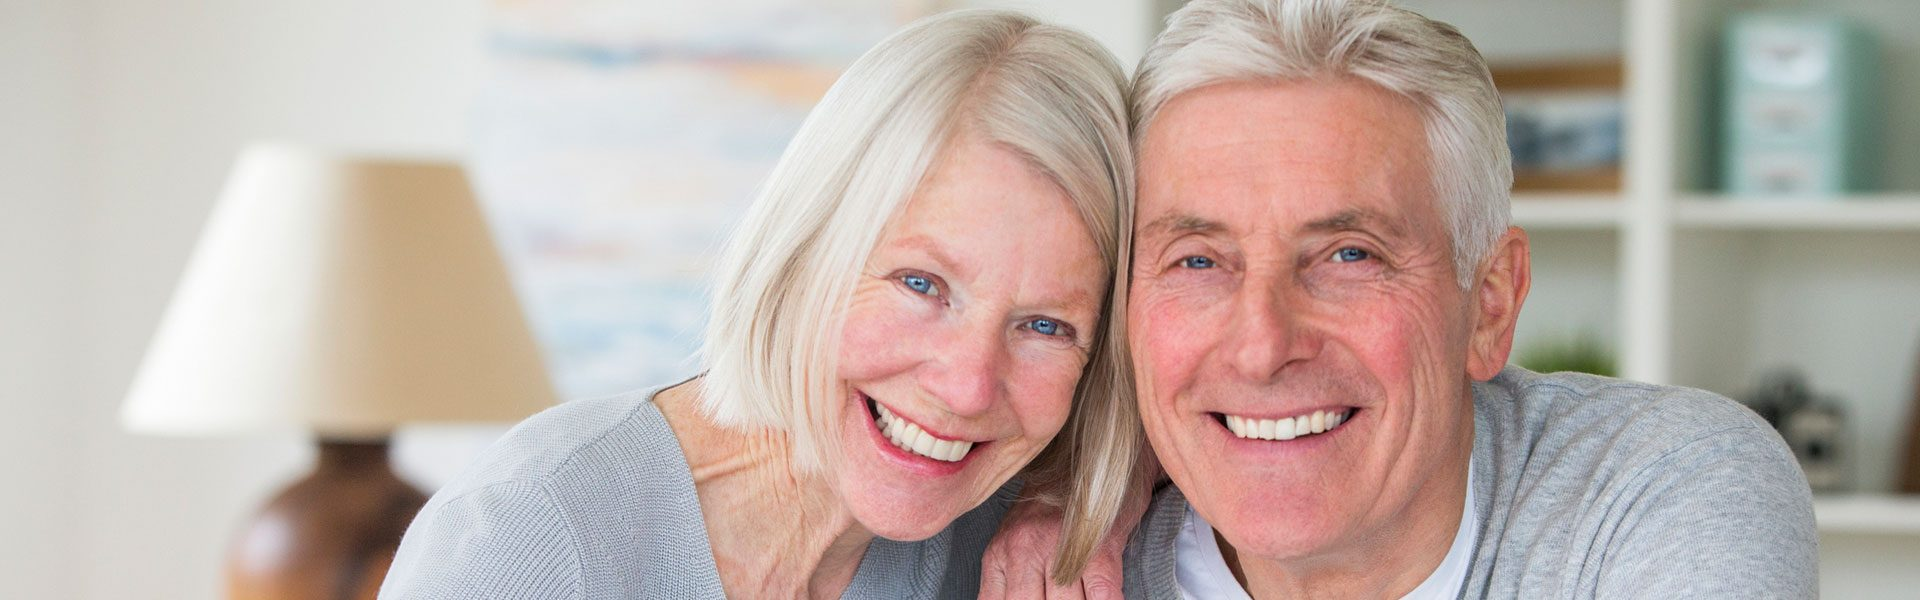 REPLACING DENTURES WITH ALL-ON-4 DENTAL IMPLANTS